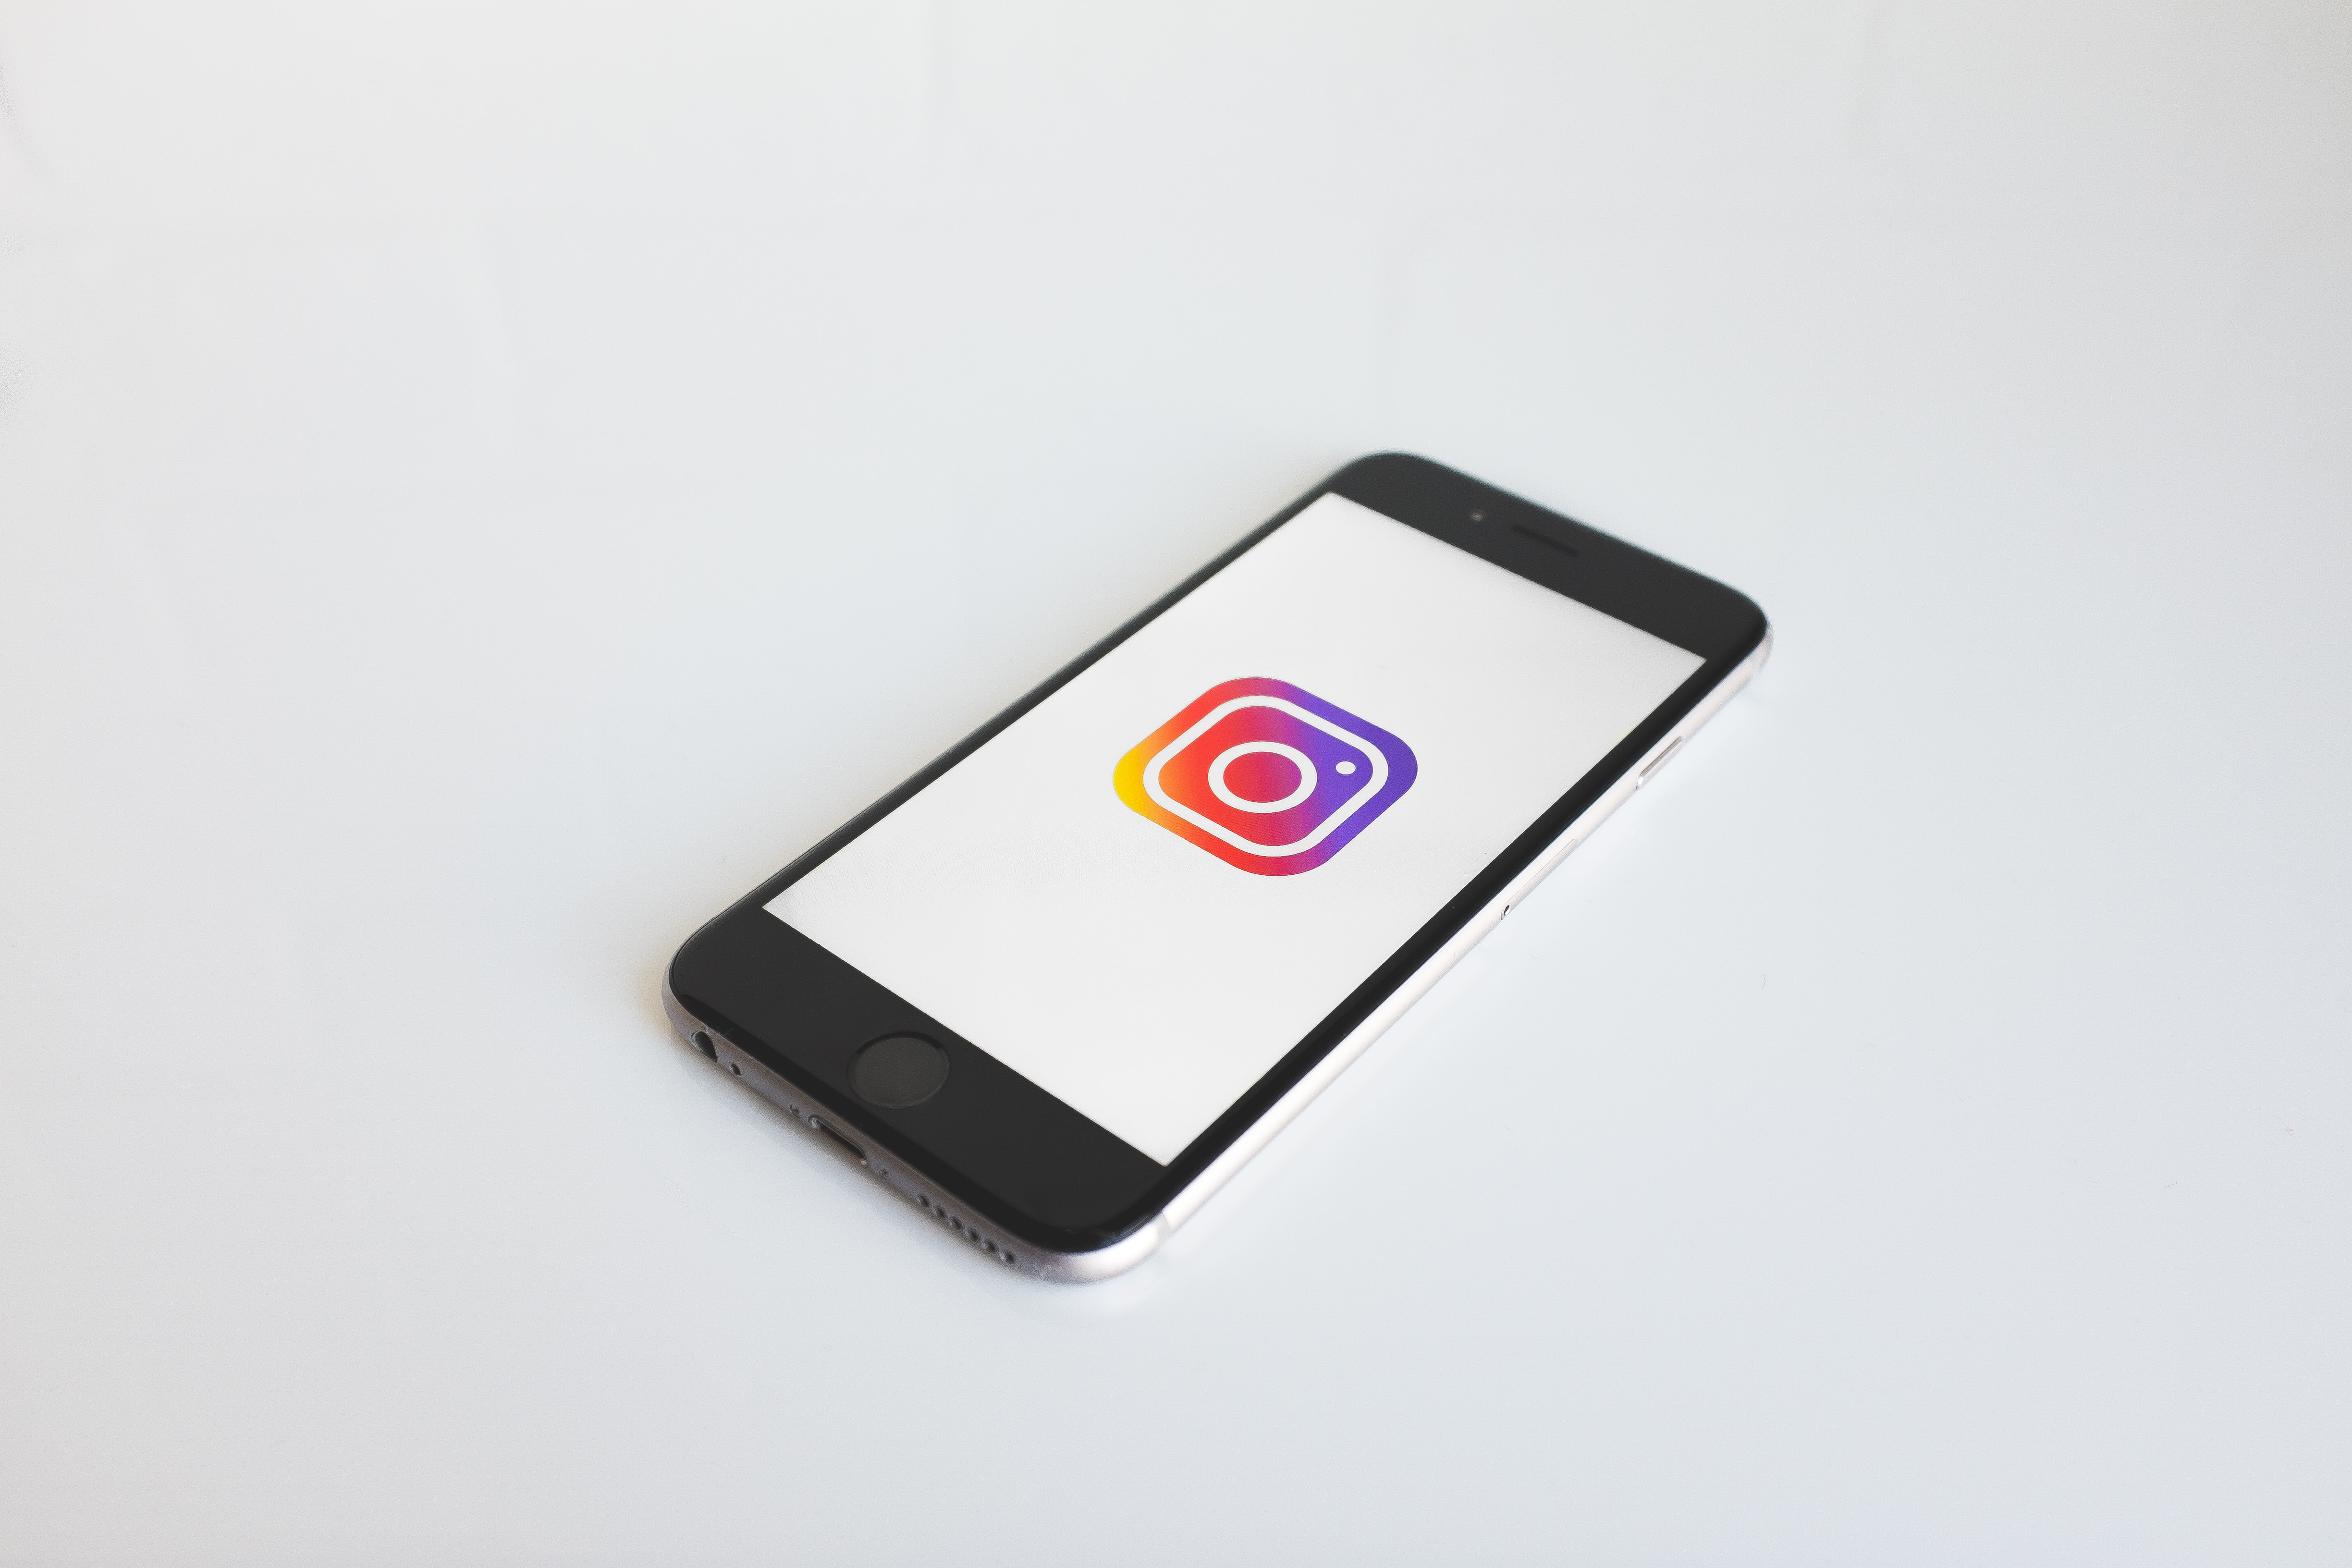 iPhone on white surface showing screen of large Instagram logo on white background